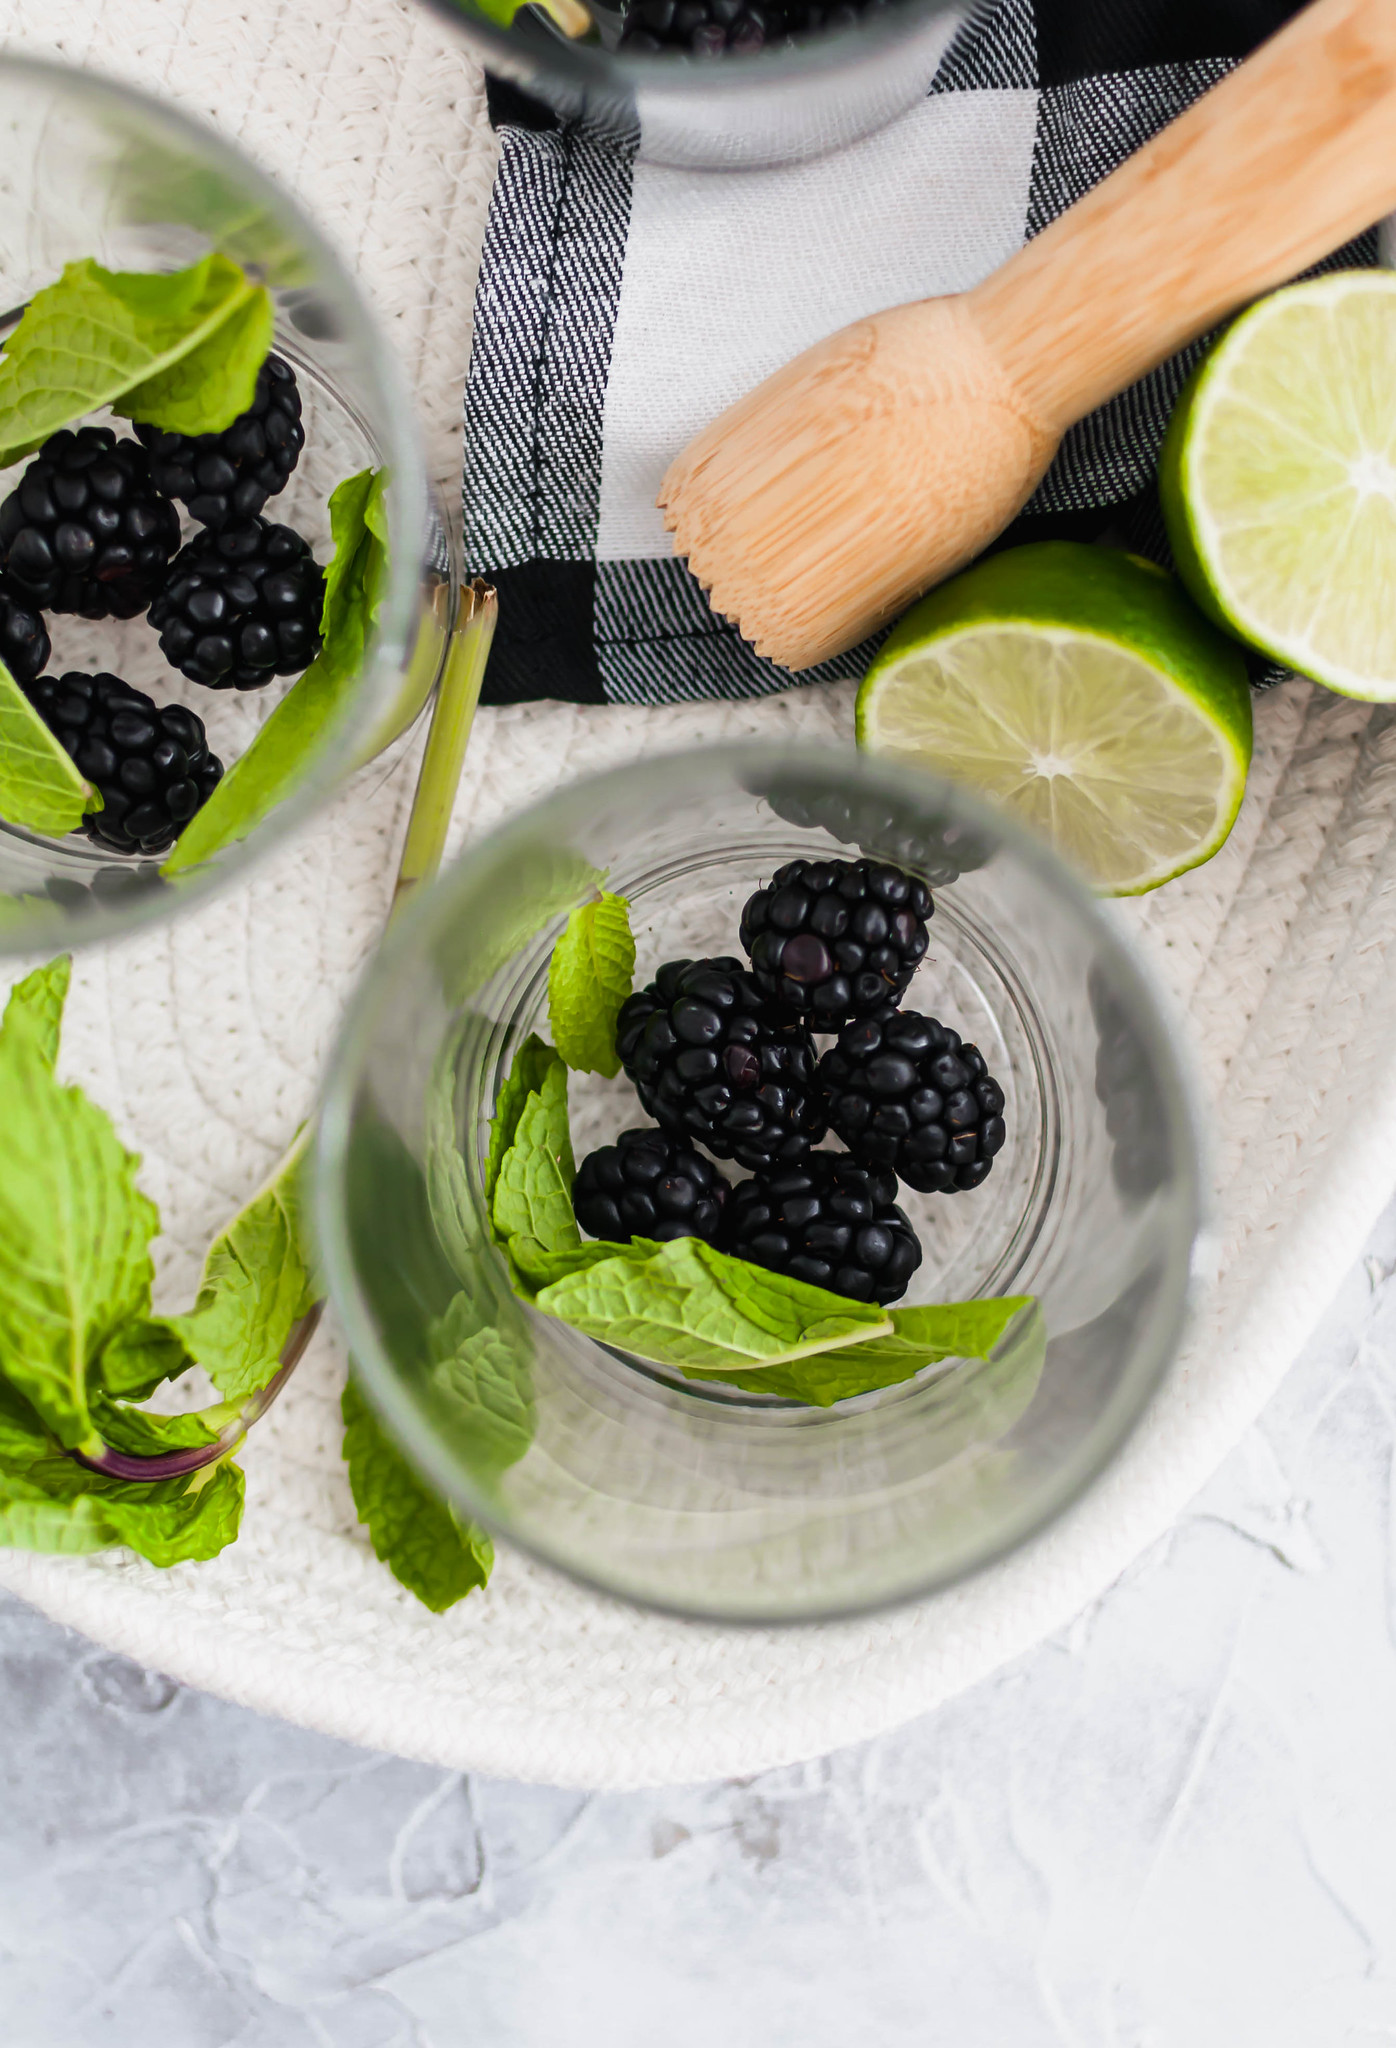 These Blackberry Mojitos will quickly become the drink of summer. An easy blackberry simple syrup and all the classic mojito ingredients are all you need for this refreshing cocktail. Ingredients for blackberry mojitos along with muddler.